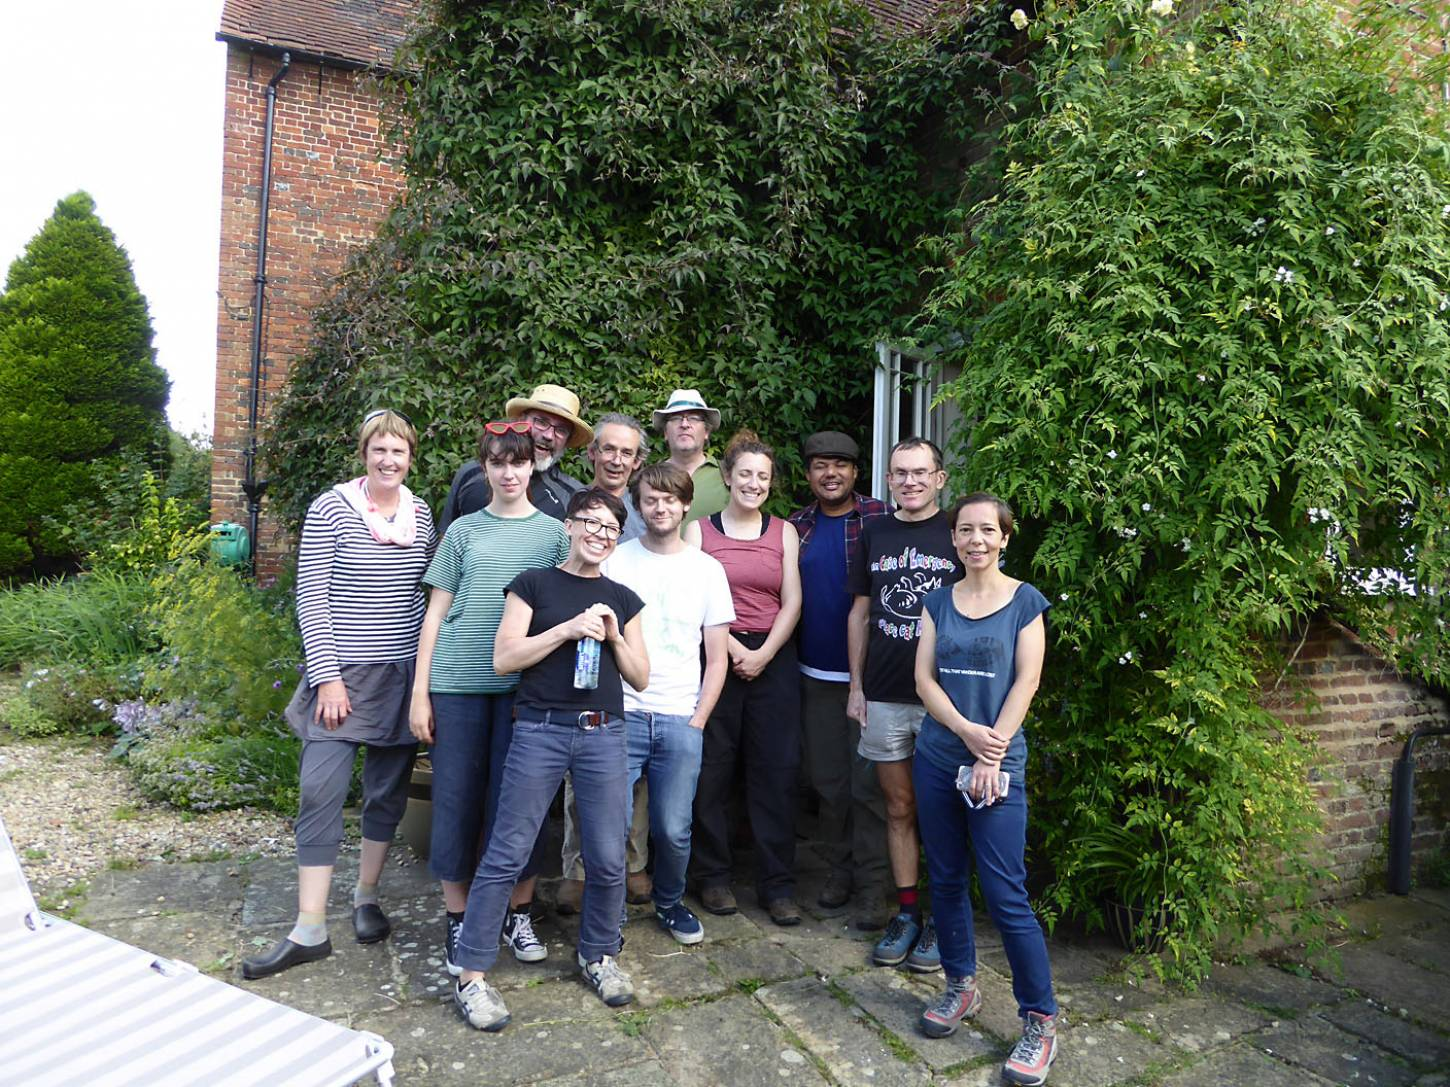 most but not all of harvest team, our manual harvest at Lodge Farm - 3:28pm&nbsp;13<sup>th</sup>&nbsp;Aug.&nbsp;'17  <a href='http://maps.google.com/?t=h&q=51.205939,-0.084247&z=18&output=embed' target=_blank><img src='http://www.brockwell-bake.org.uk/img/marker.png' style='border:none;vertical-align:top' height=16px></a>